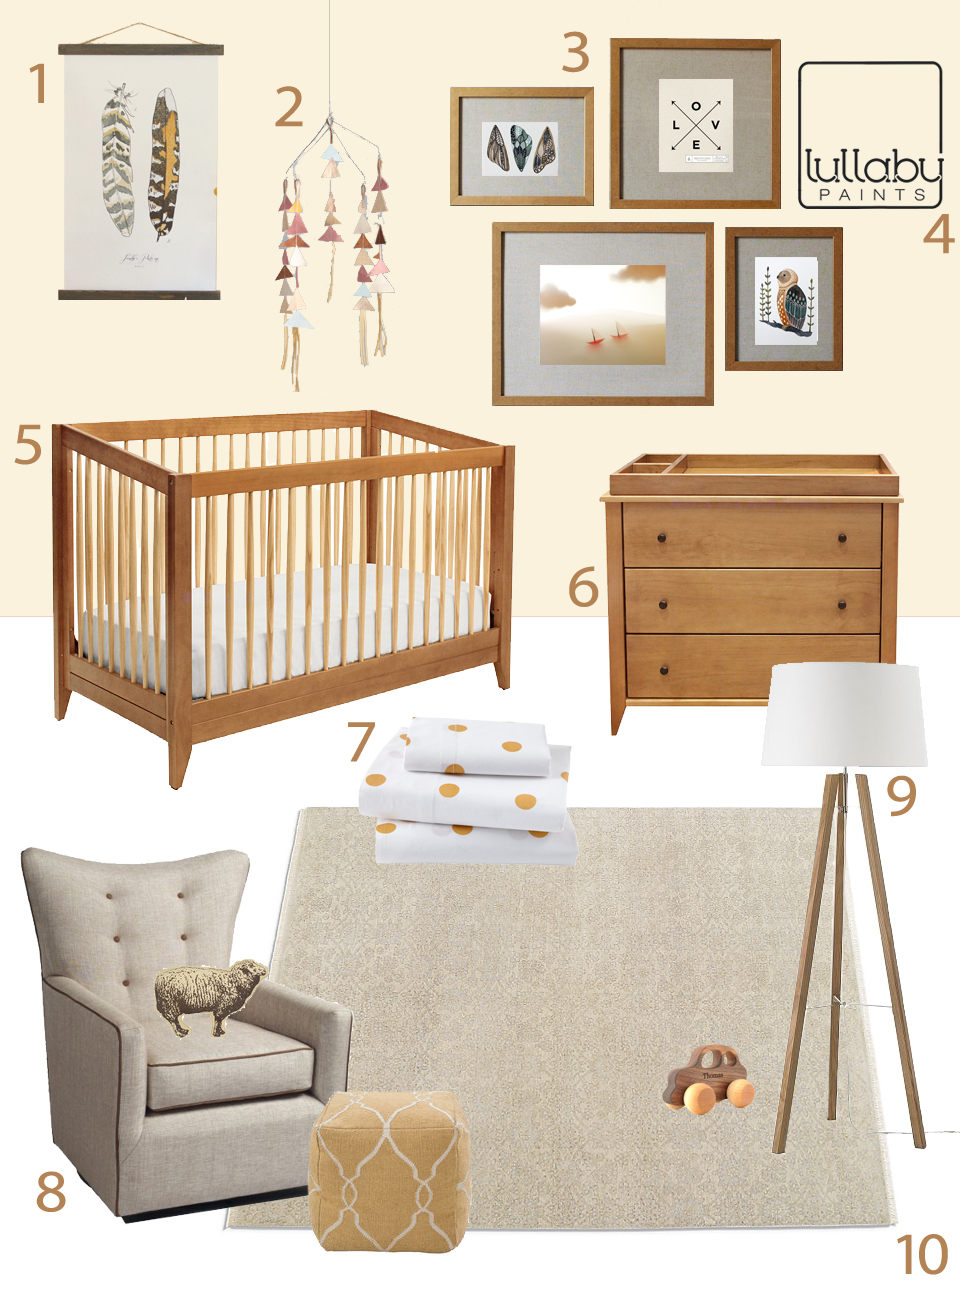 neutral colors for baby nursery - lullaby paints